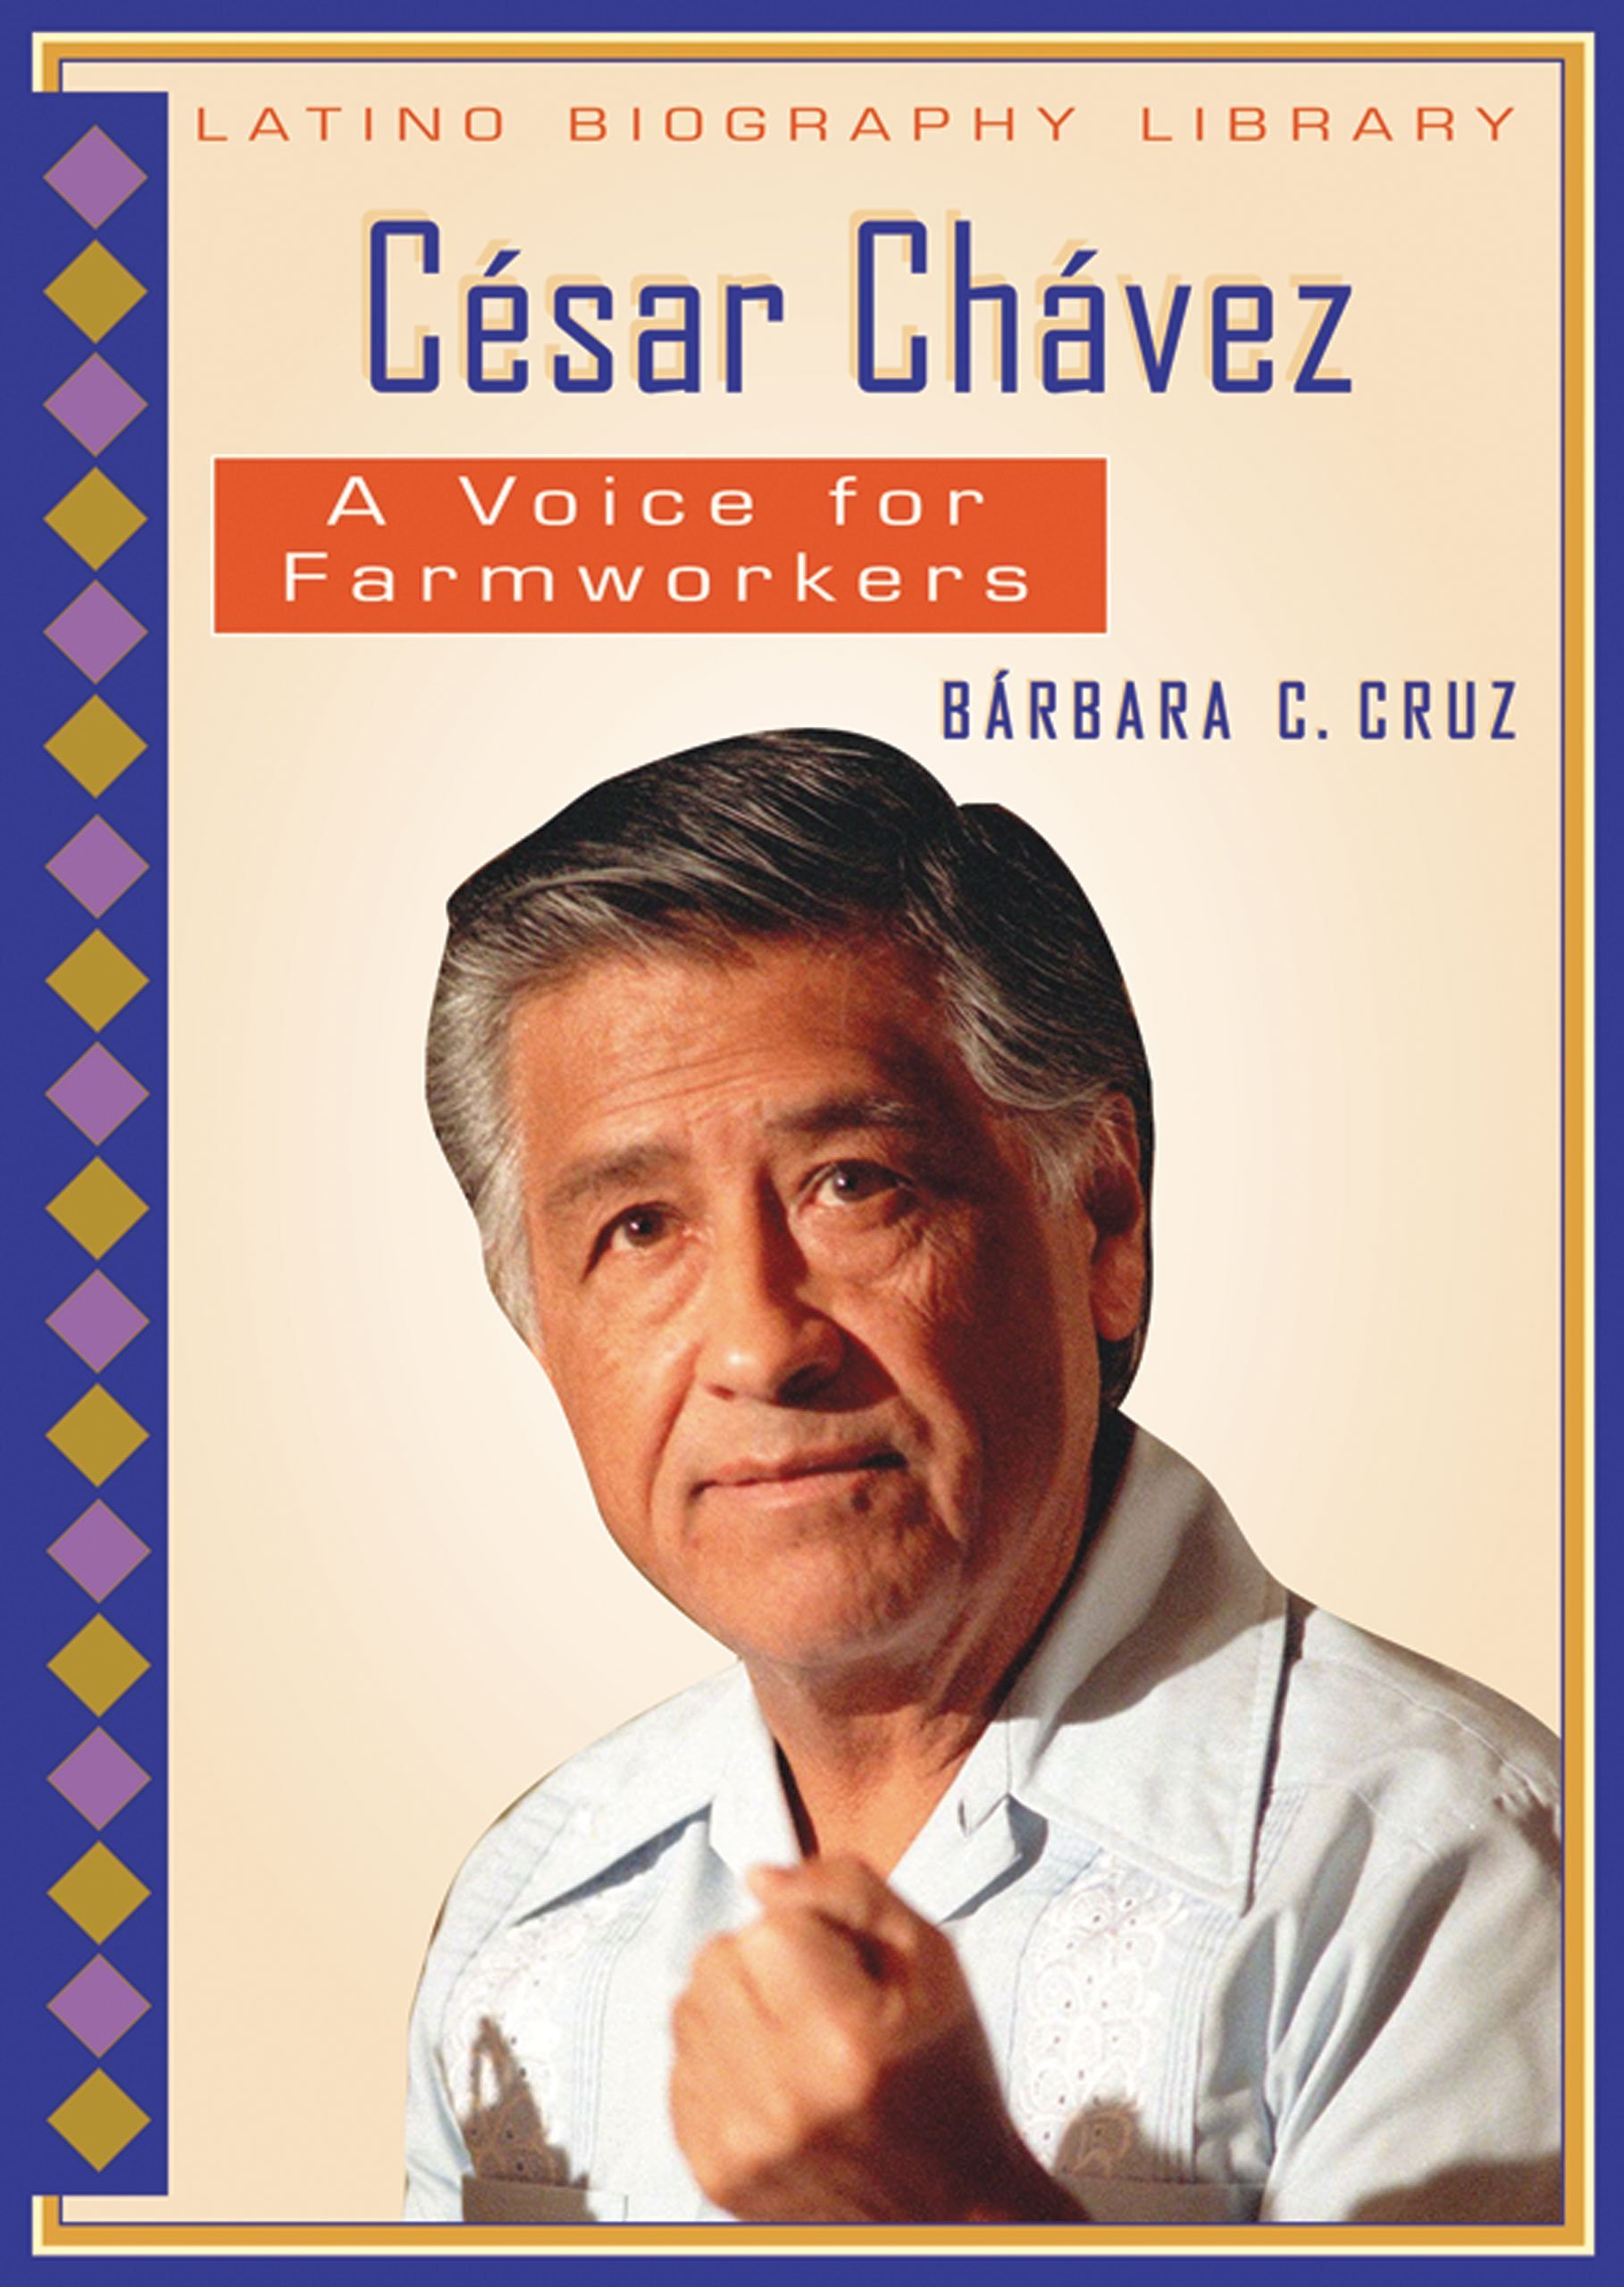 Cesar Chavez: A Voice For Farmworkers (Latino Biography Library) ebook